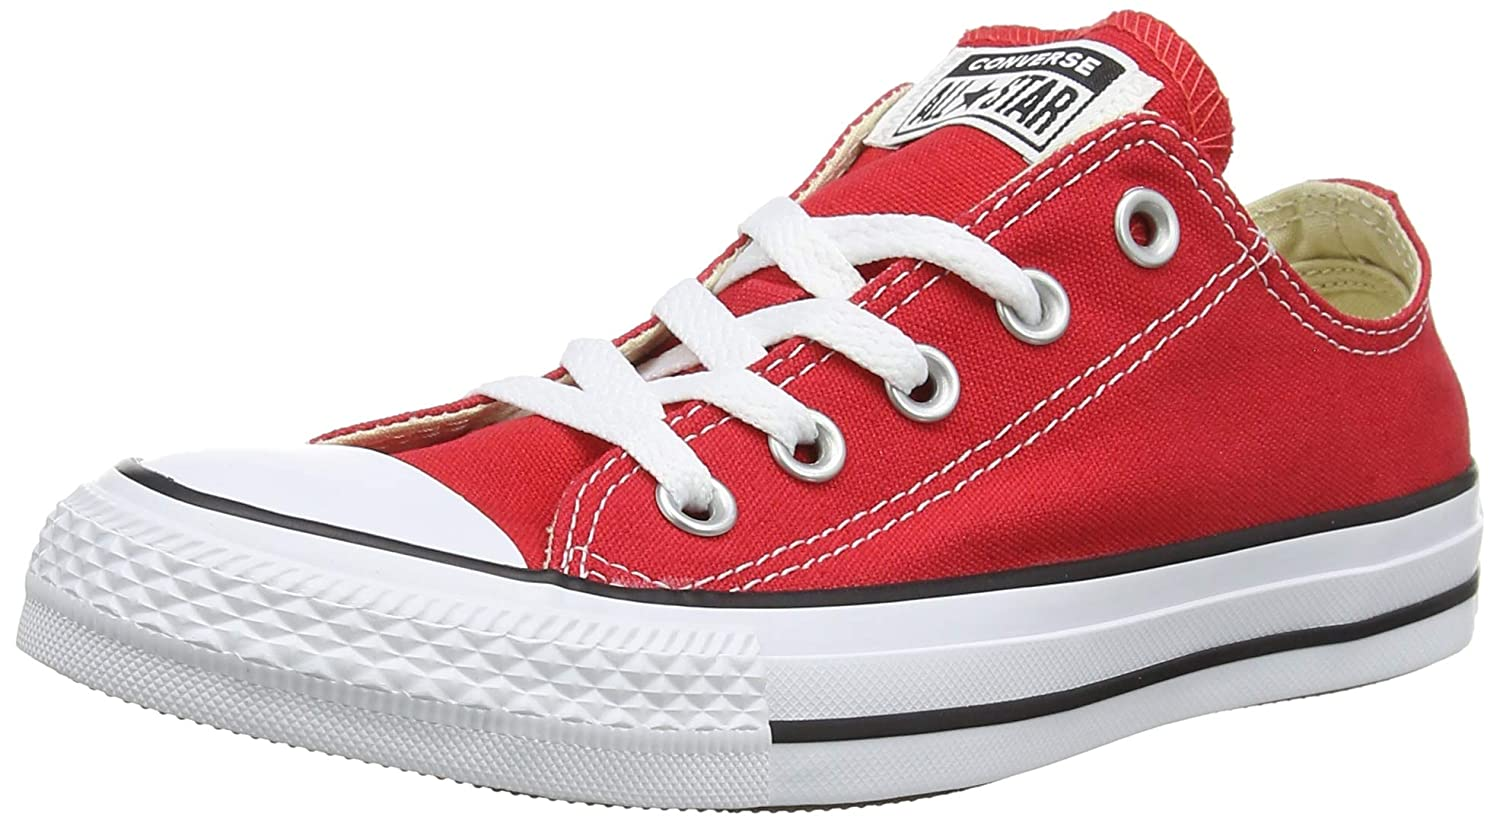 Converse Chuck Taylor All Star Red Core, B07H3NYQF1 Baskets All Mixte Adulte Red cb4ebe9 - epictionpvp.space